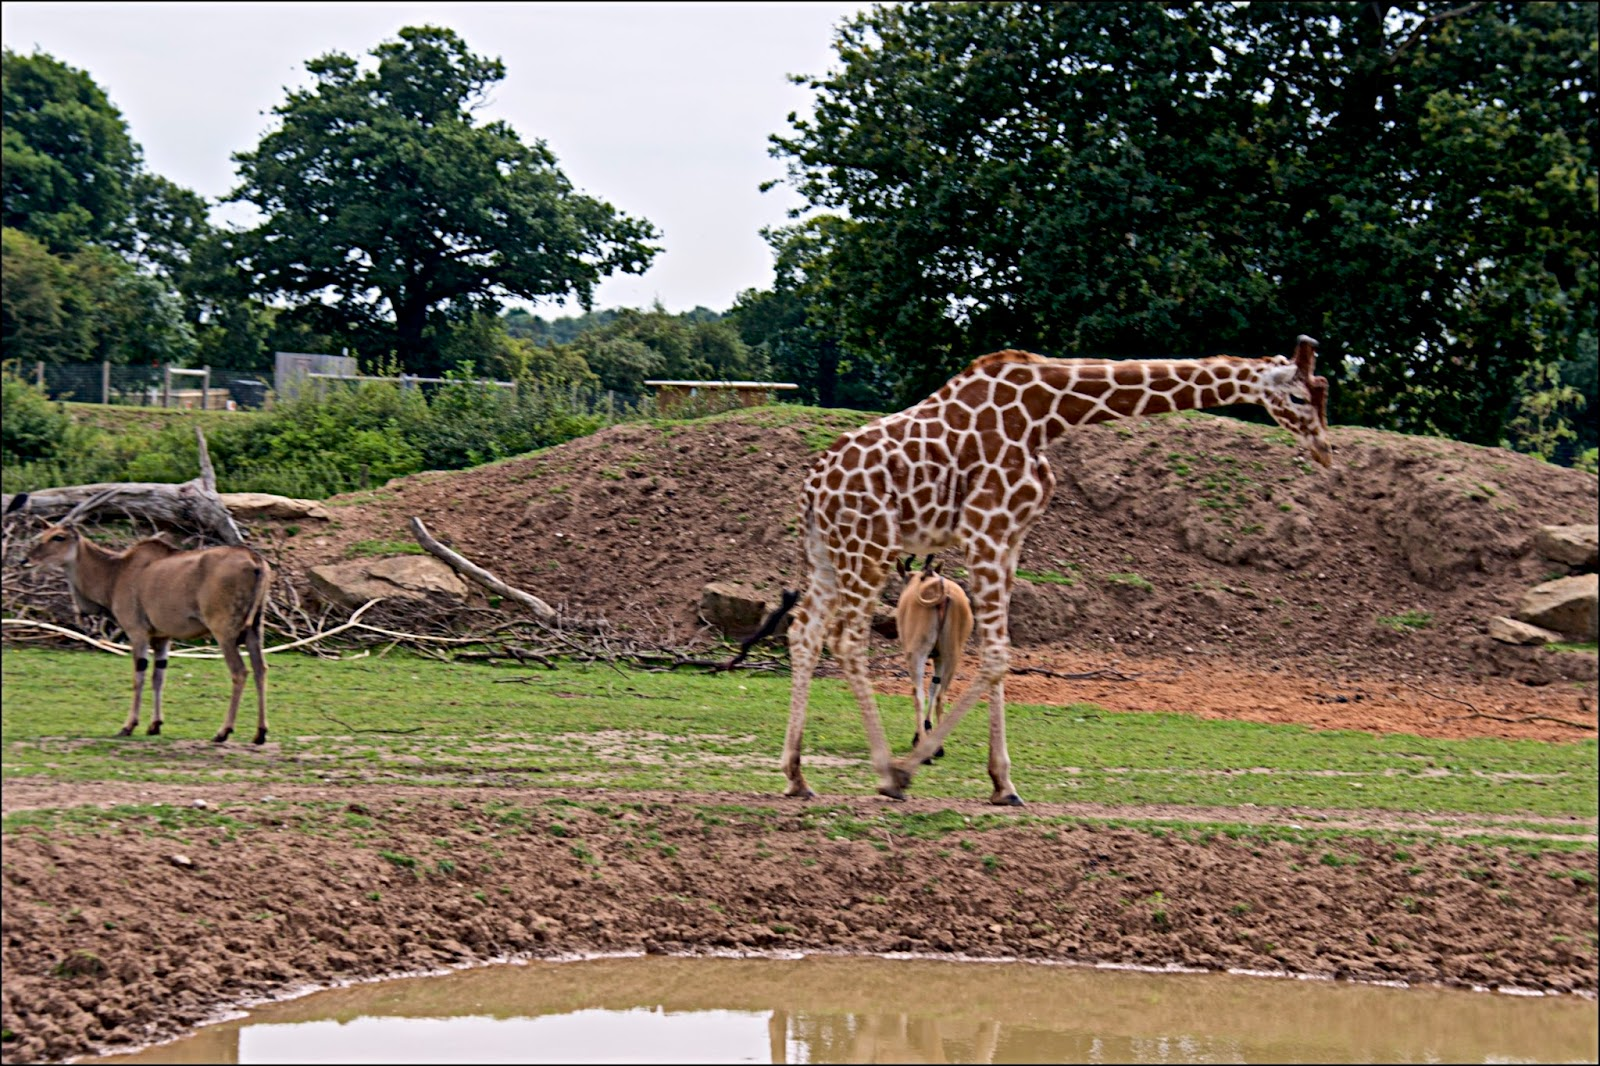 work of yorkshire wildlife park Award-winning yorkshire wildlife park has announced expansion plans that will bring £50m investment and over 300 extra jobs the park has secured 150 acres of land adjacent to the current site and is developing plans, which have the potential to make it one of the leading destinations in the uk.